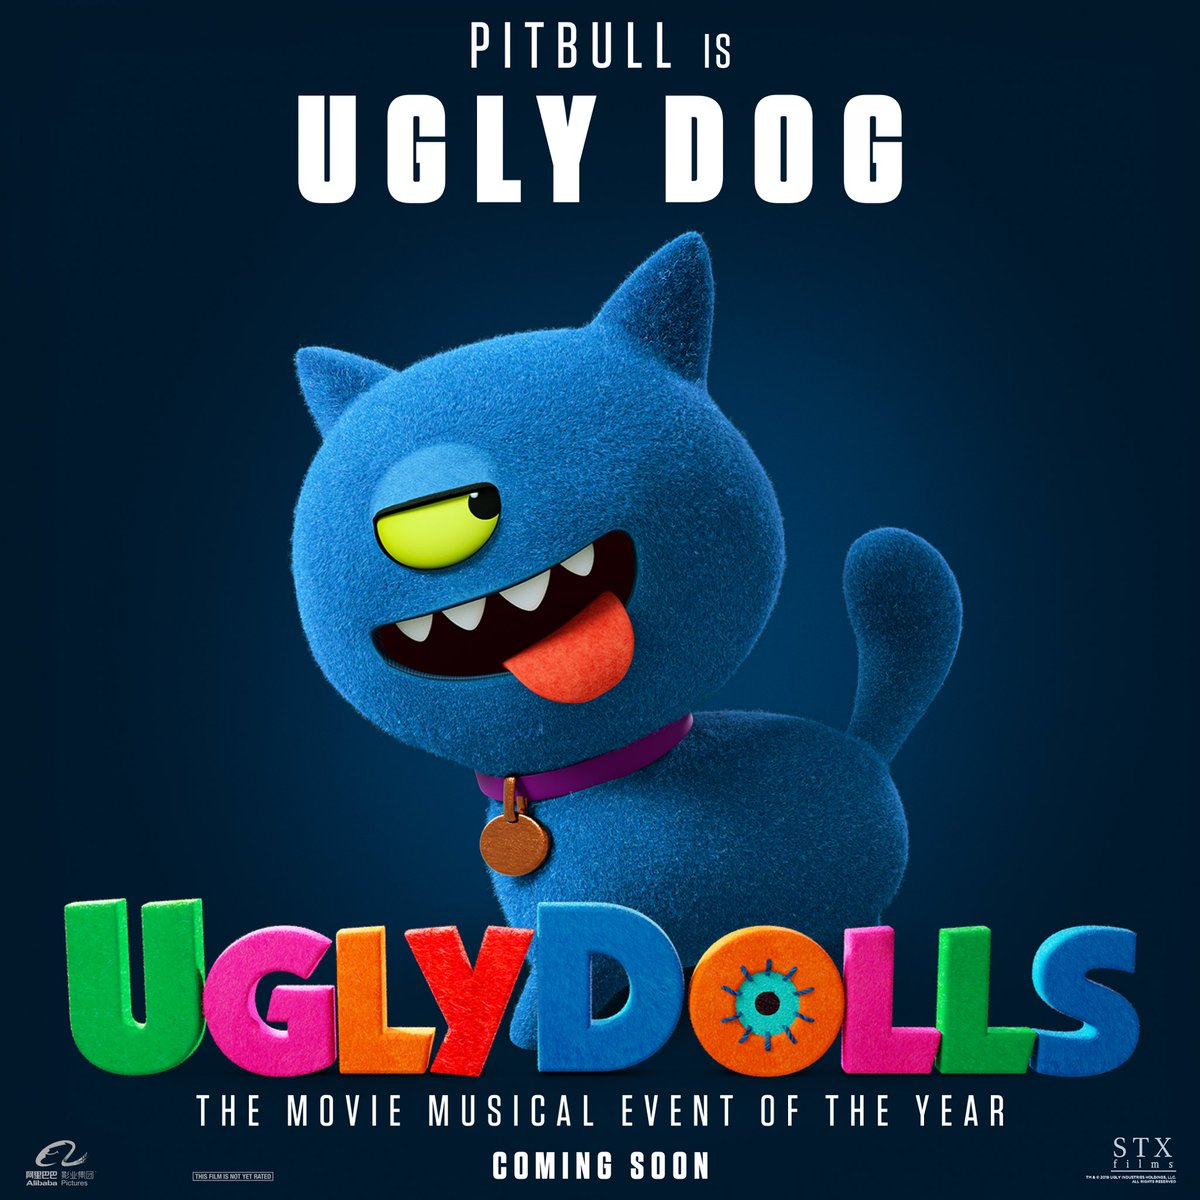 Think #UglyDog doesn't stand a chance? Think again! Get ready for @UglyDolls in theaters May 3! https://t.co/xyXryruT9r